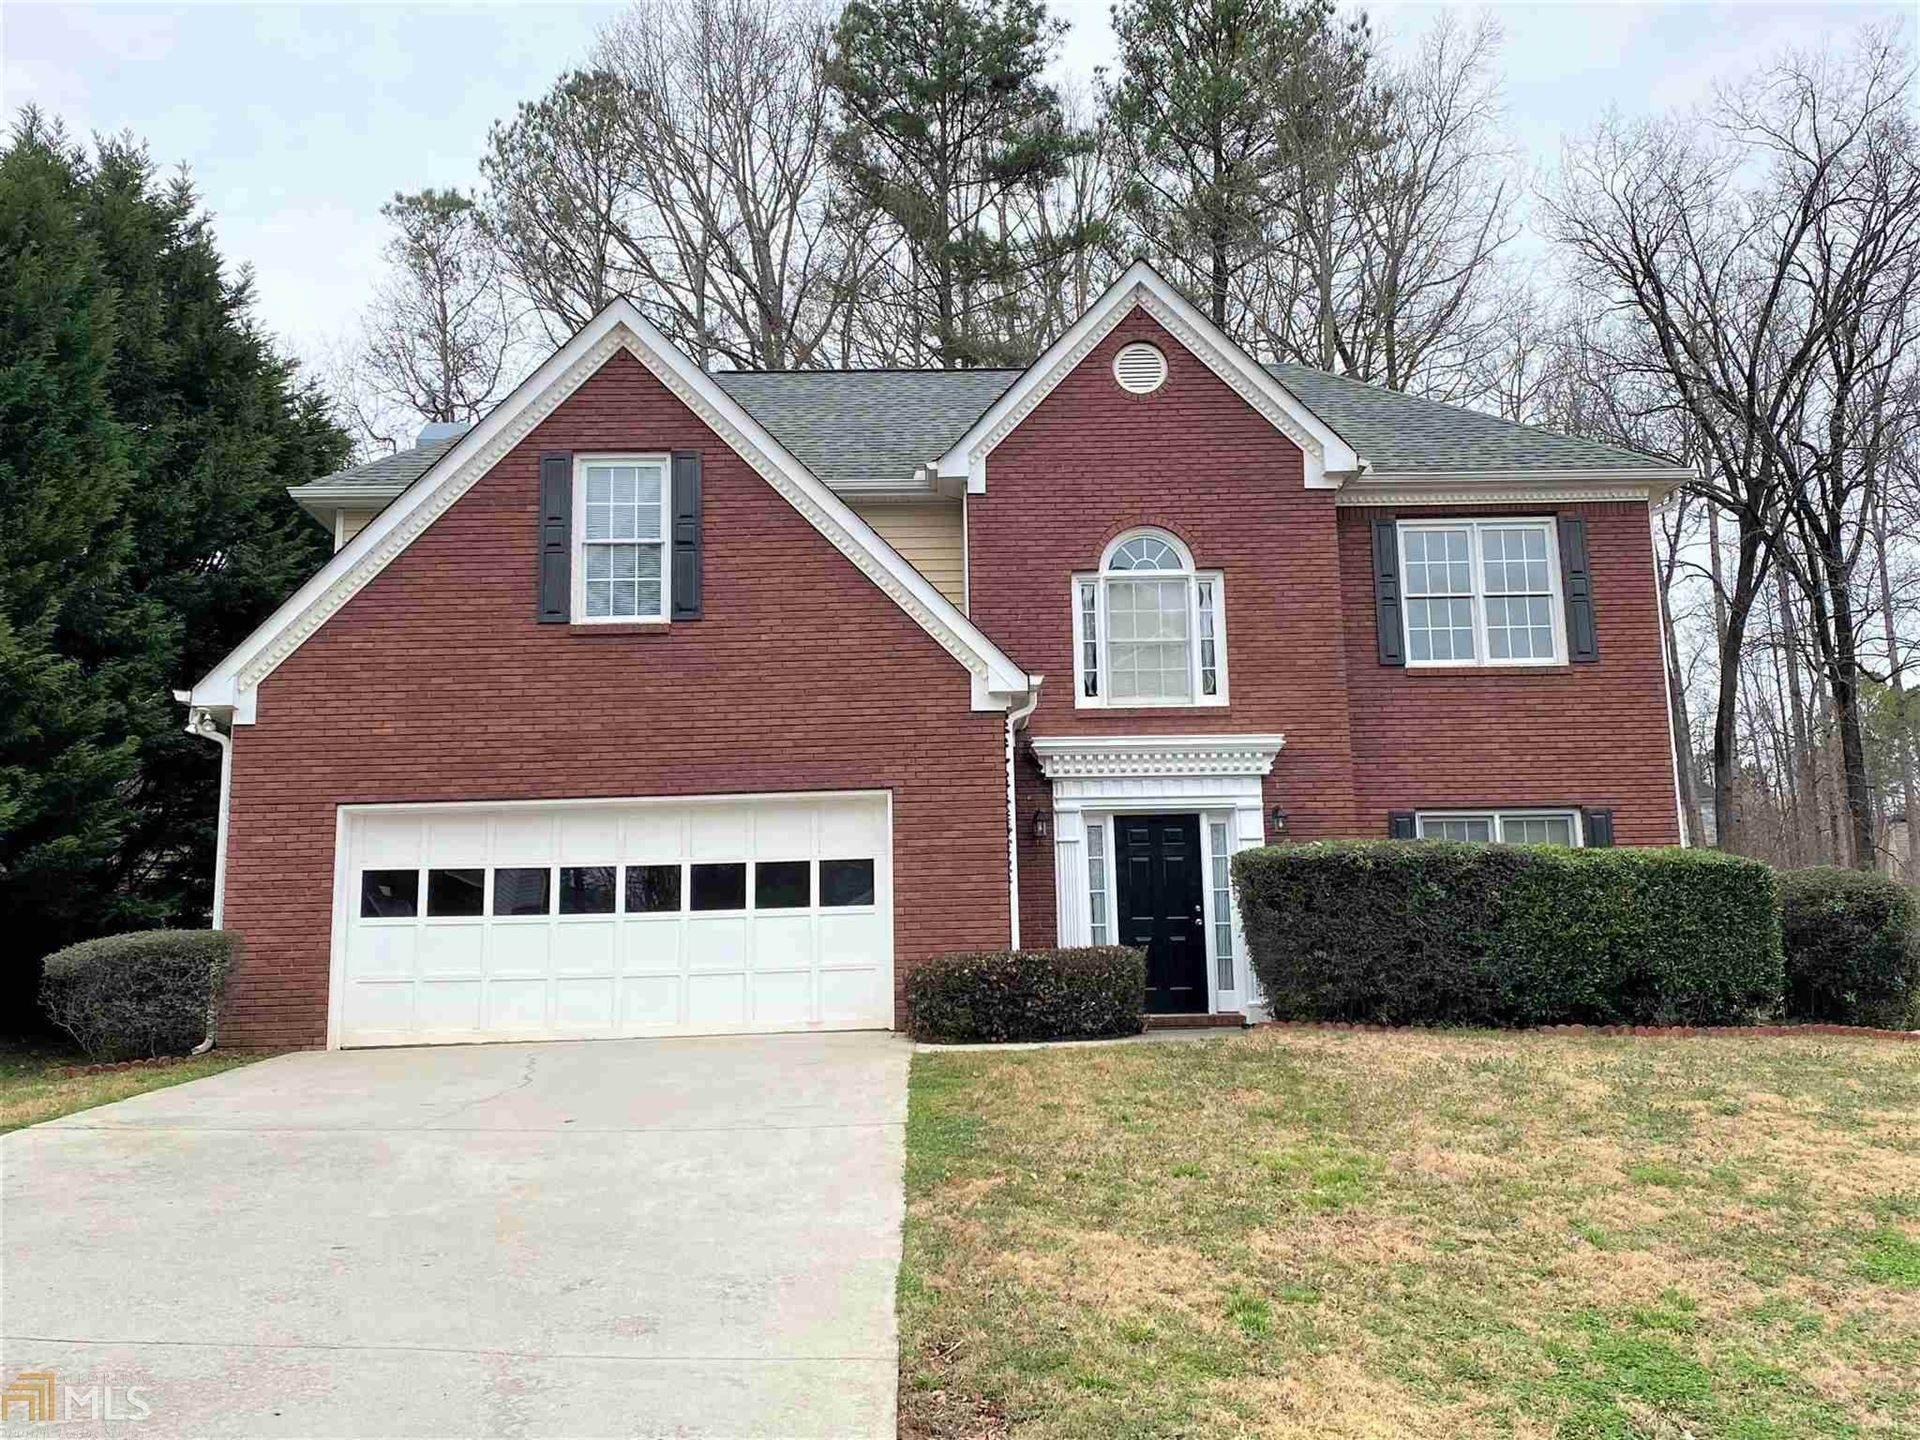 4491 Saddle Bend Trl, Snellville, GA 30039 - #: 8936341